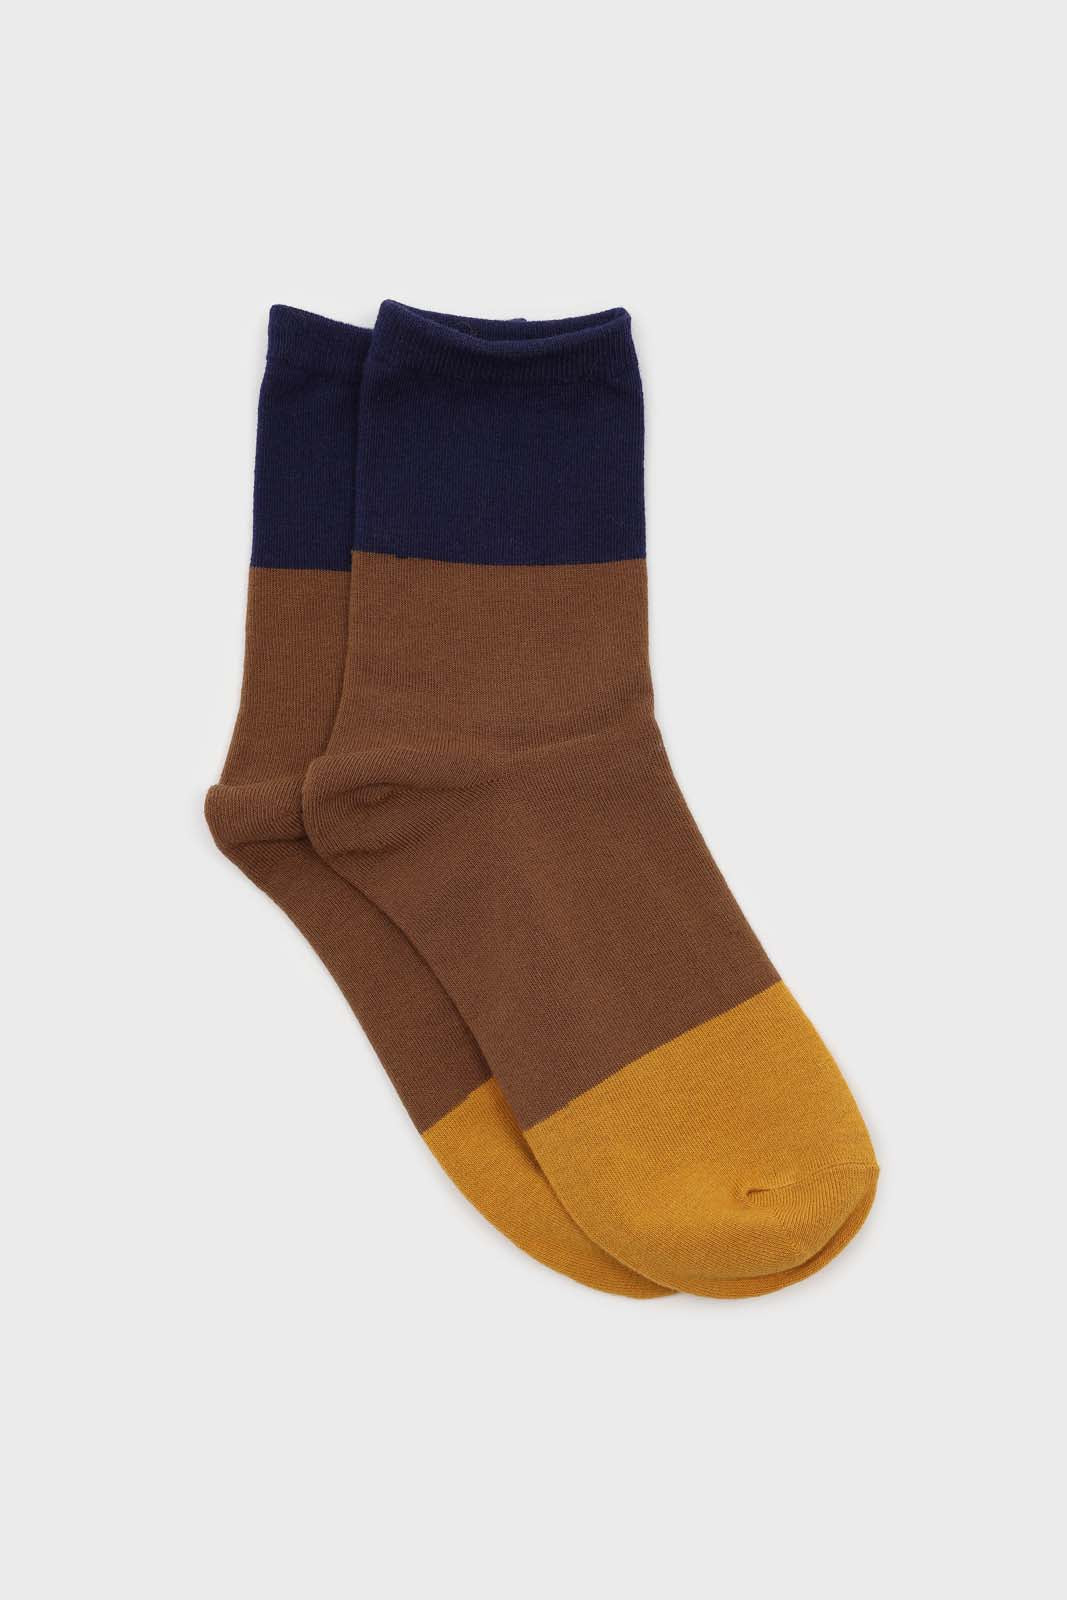 Camel and blue triple colorblock socks1sx